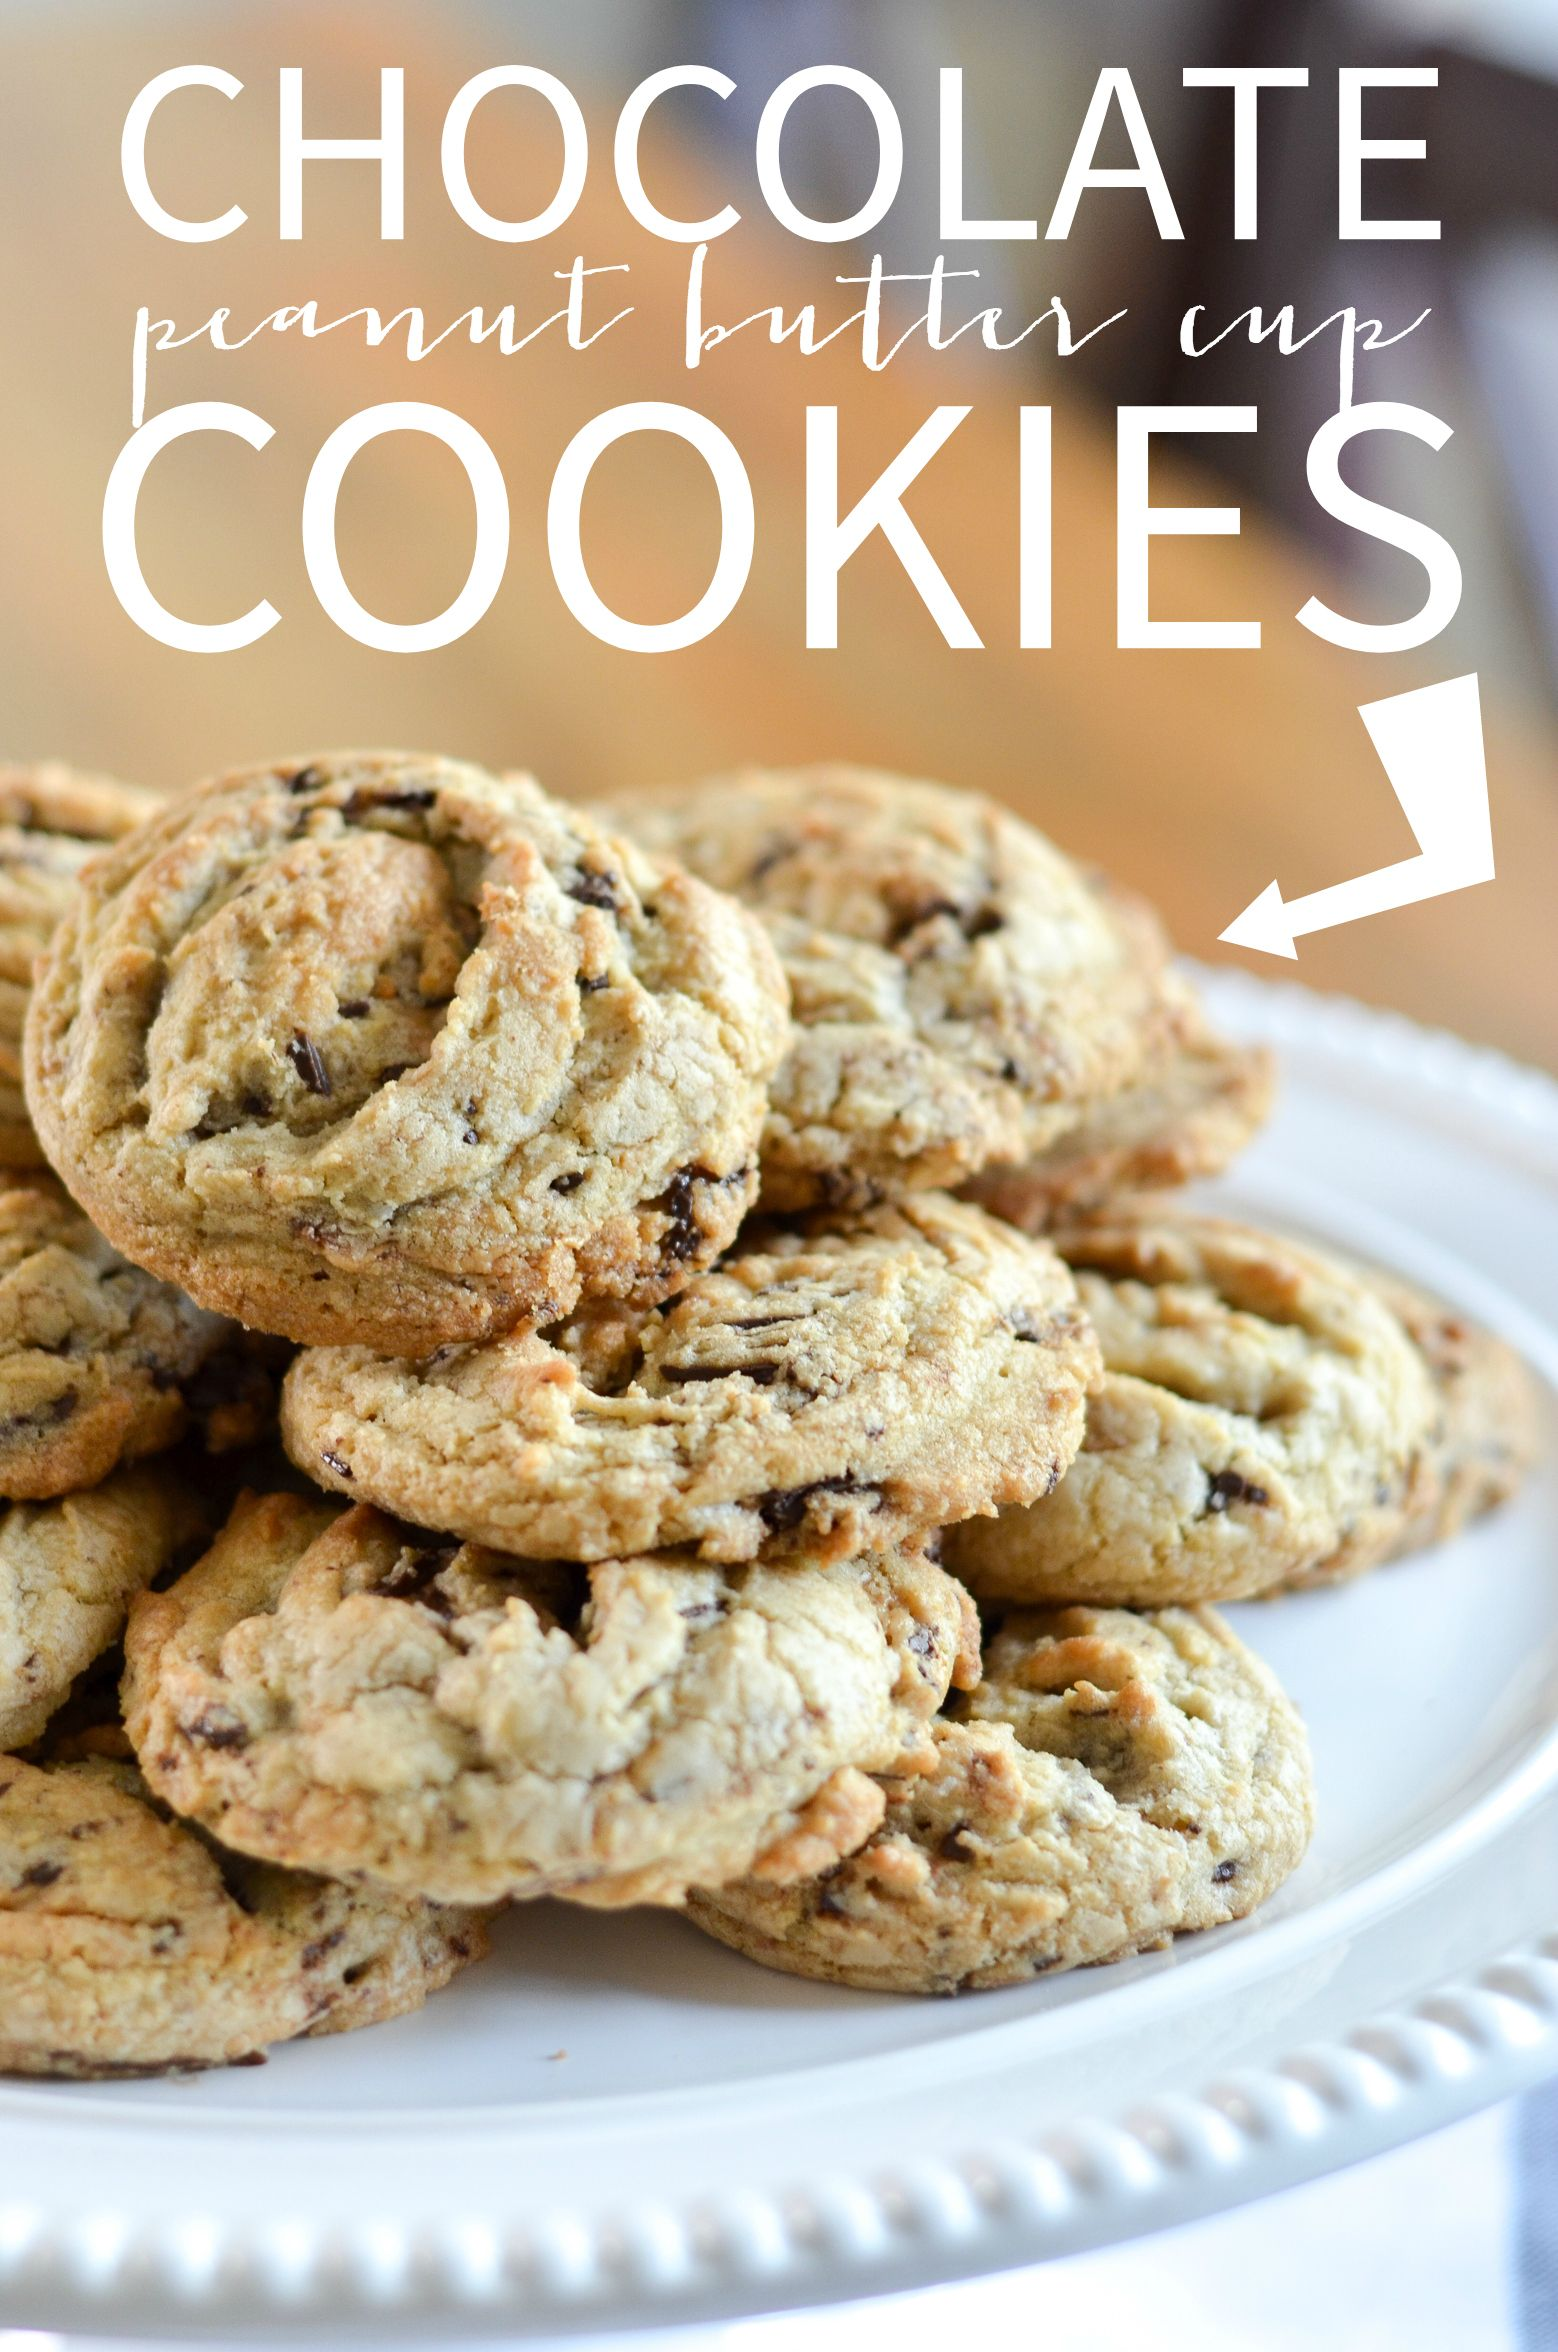 Chocolate Peanut Butter Cup Cookies Recipe Recipes The